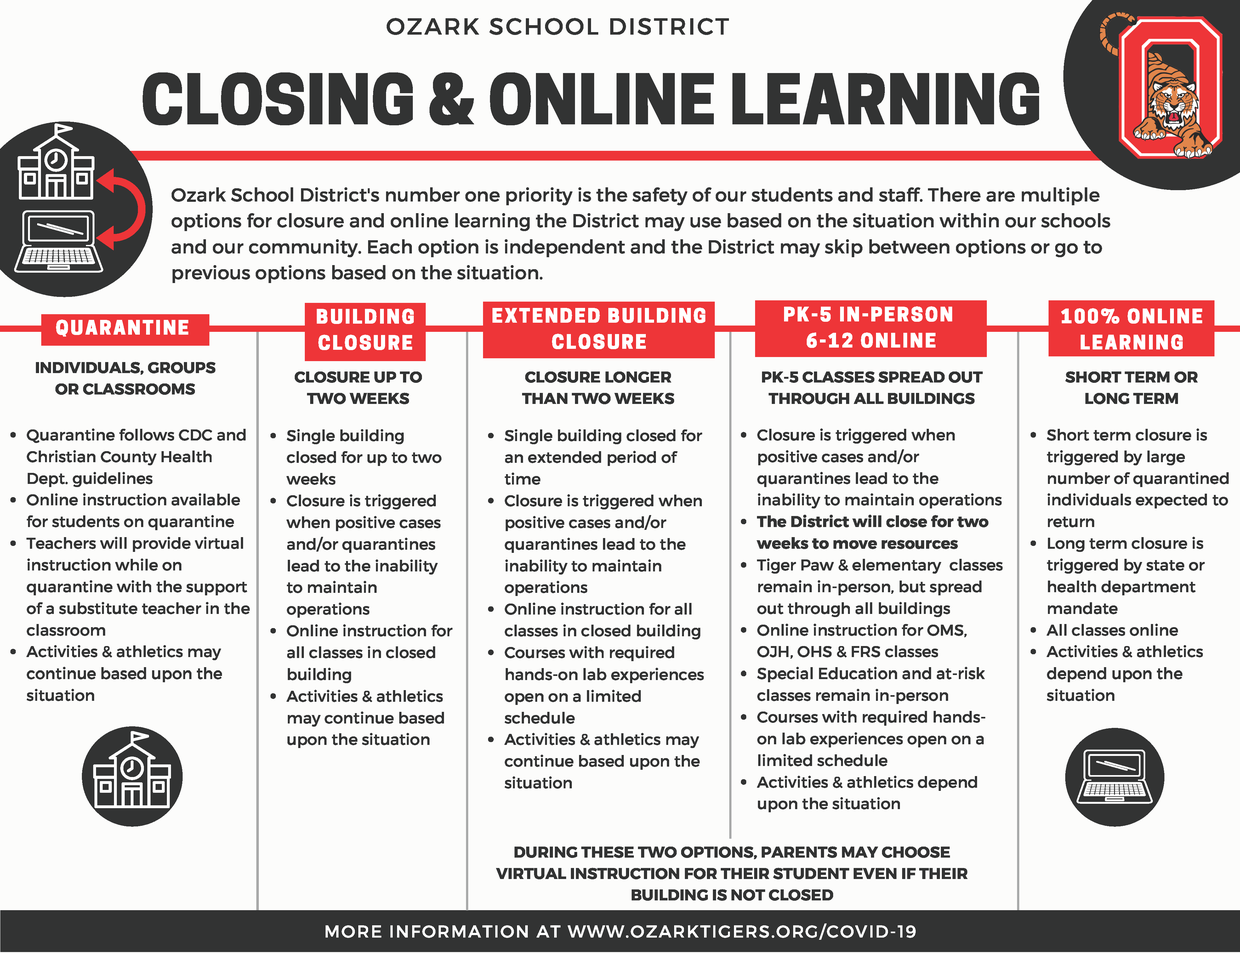 Closing & Online Learning Options